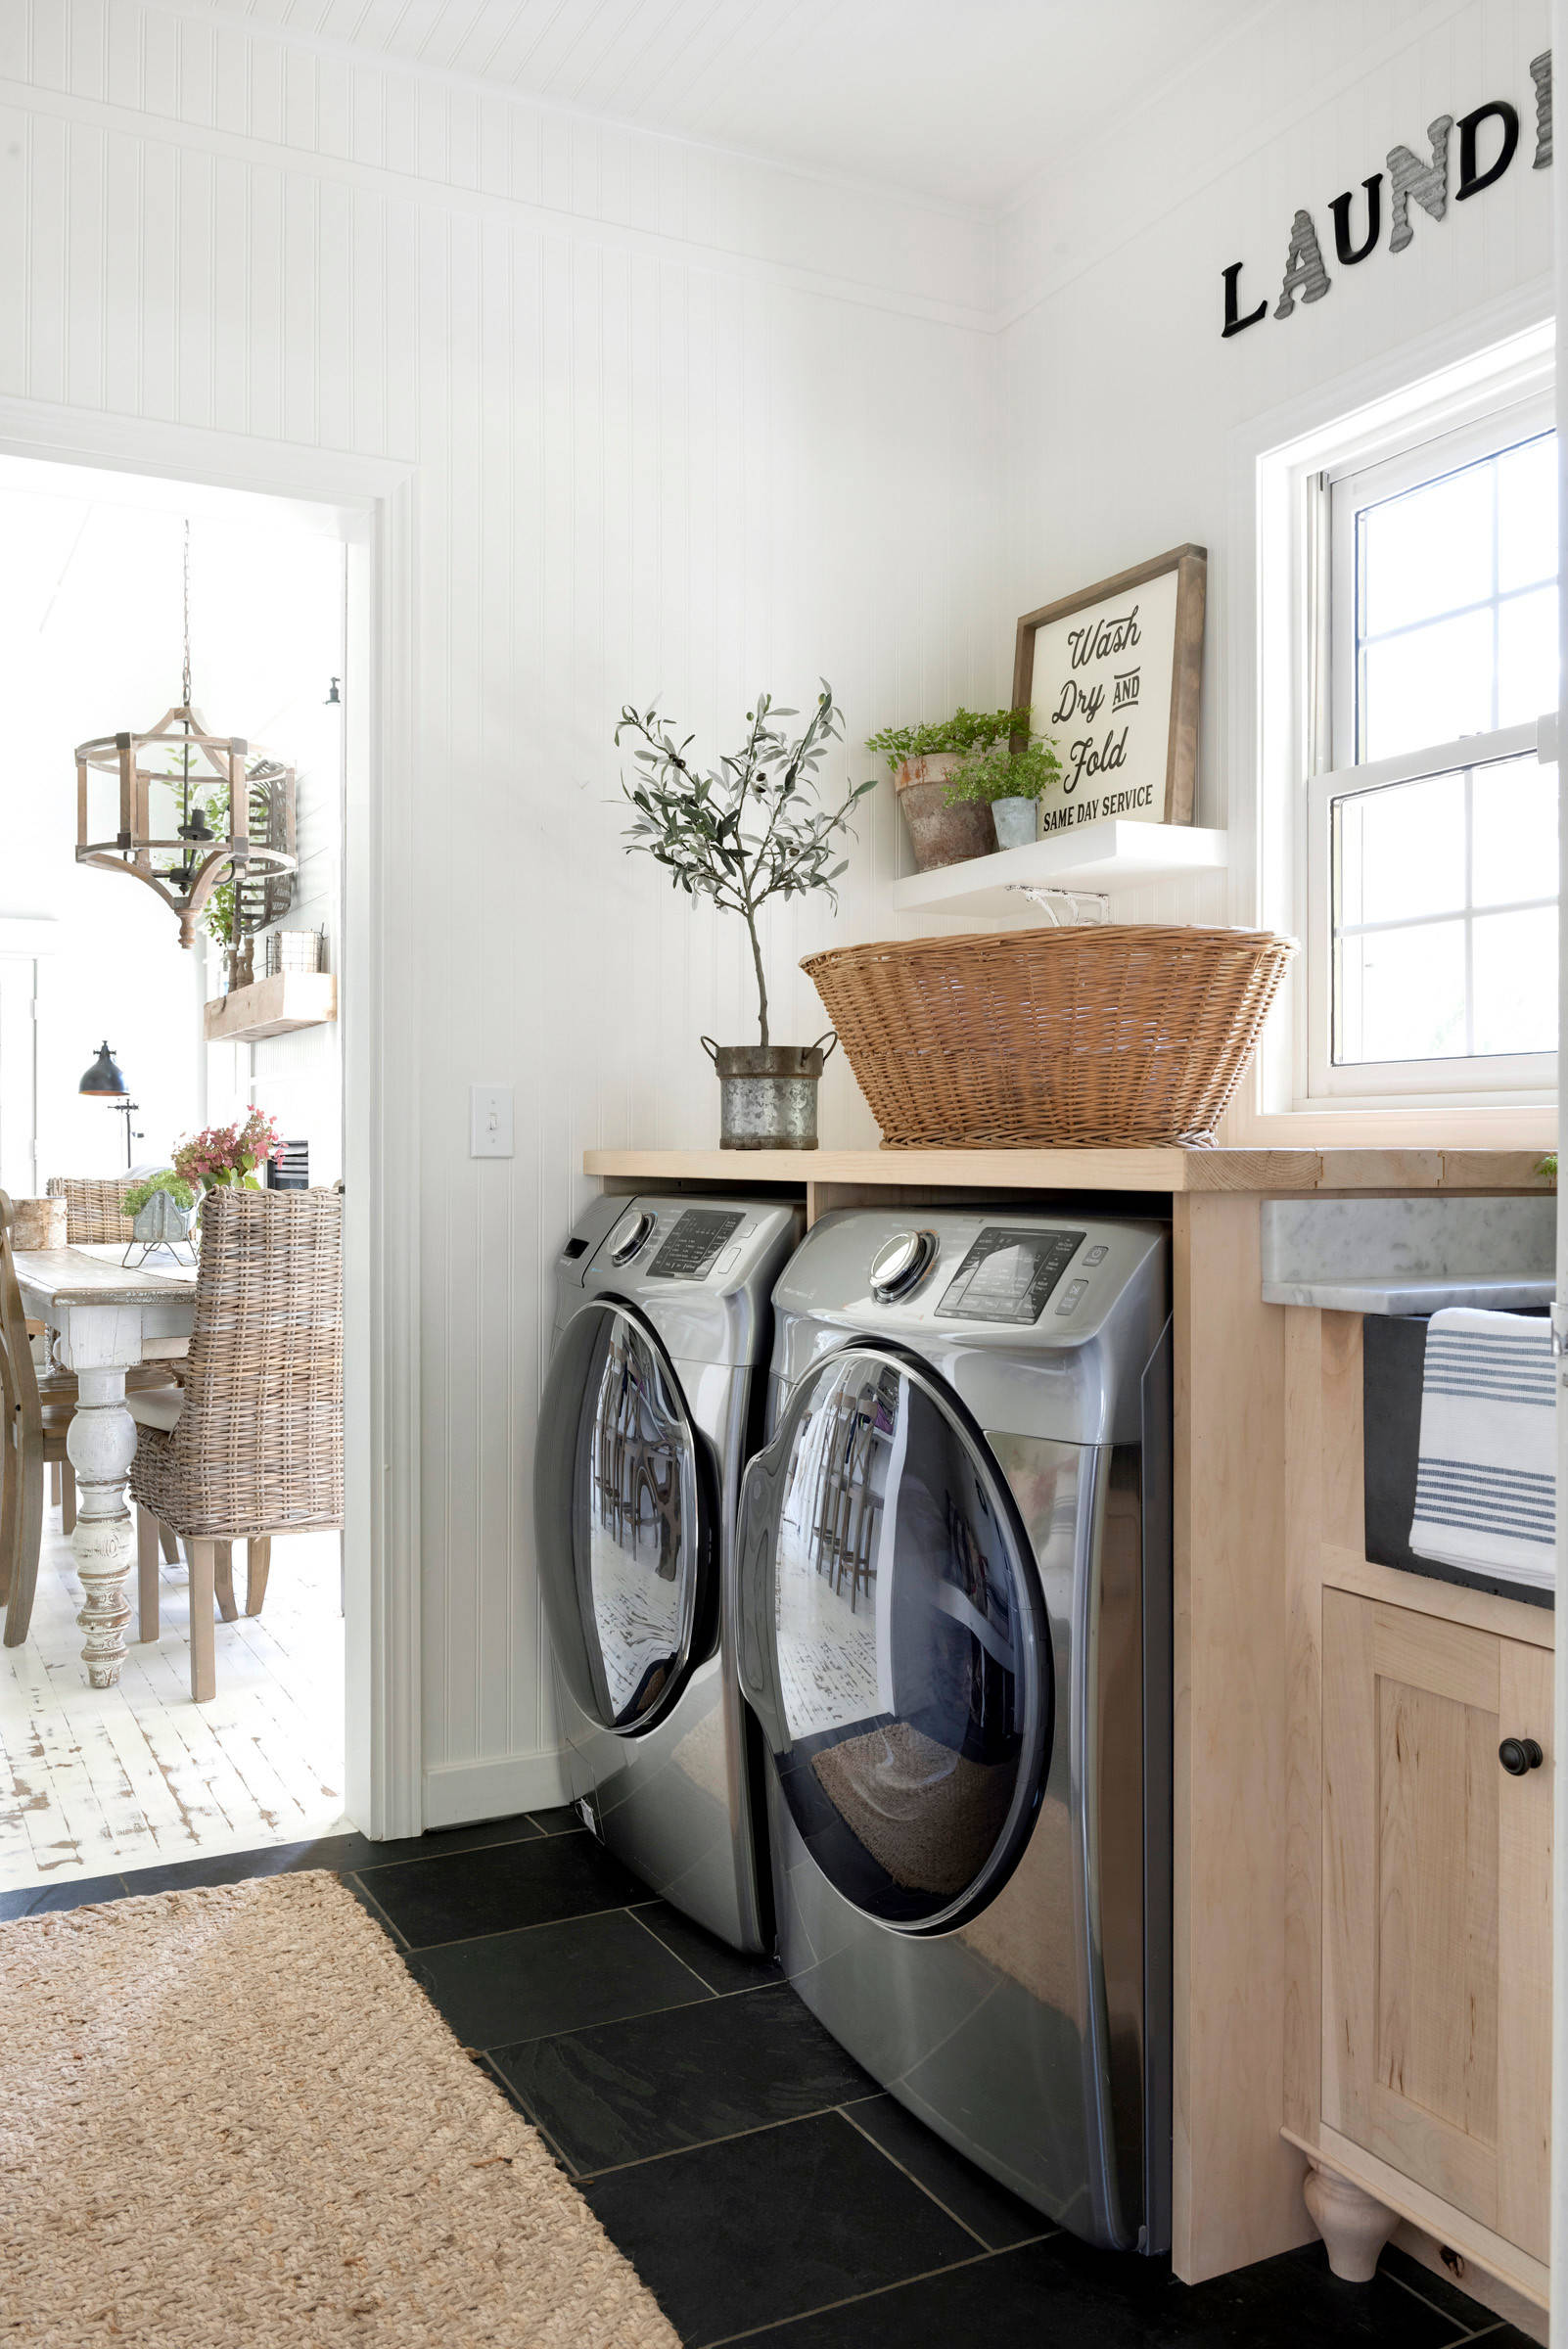 75 Beautiful Farmhouse Laundry Room With Light Wood Cabinets Pictures Ideas October 2020 Houzz